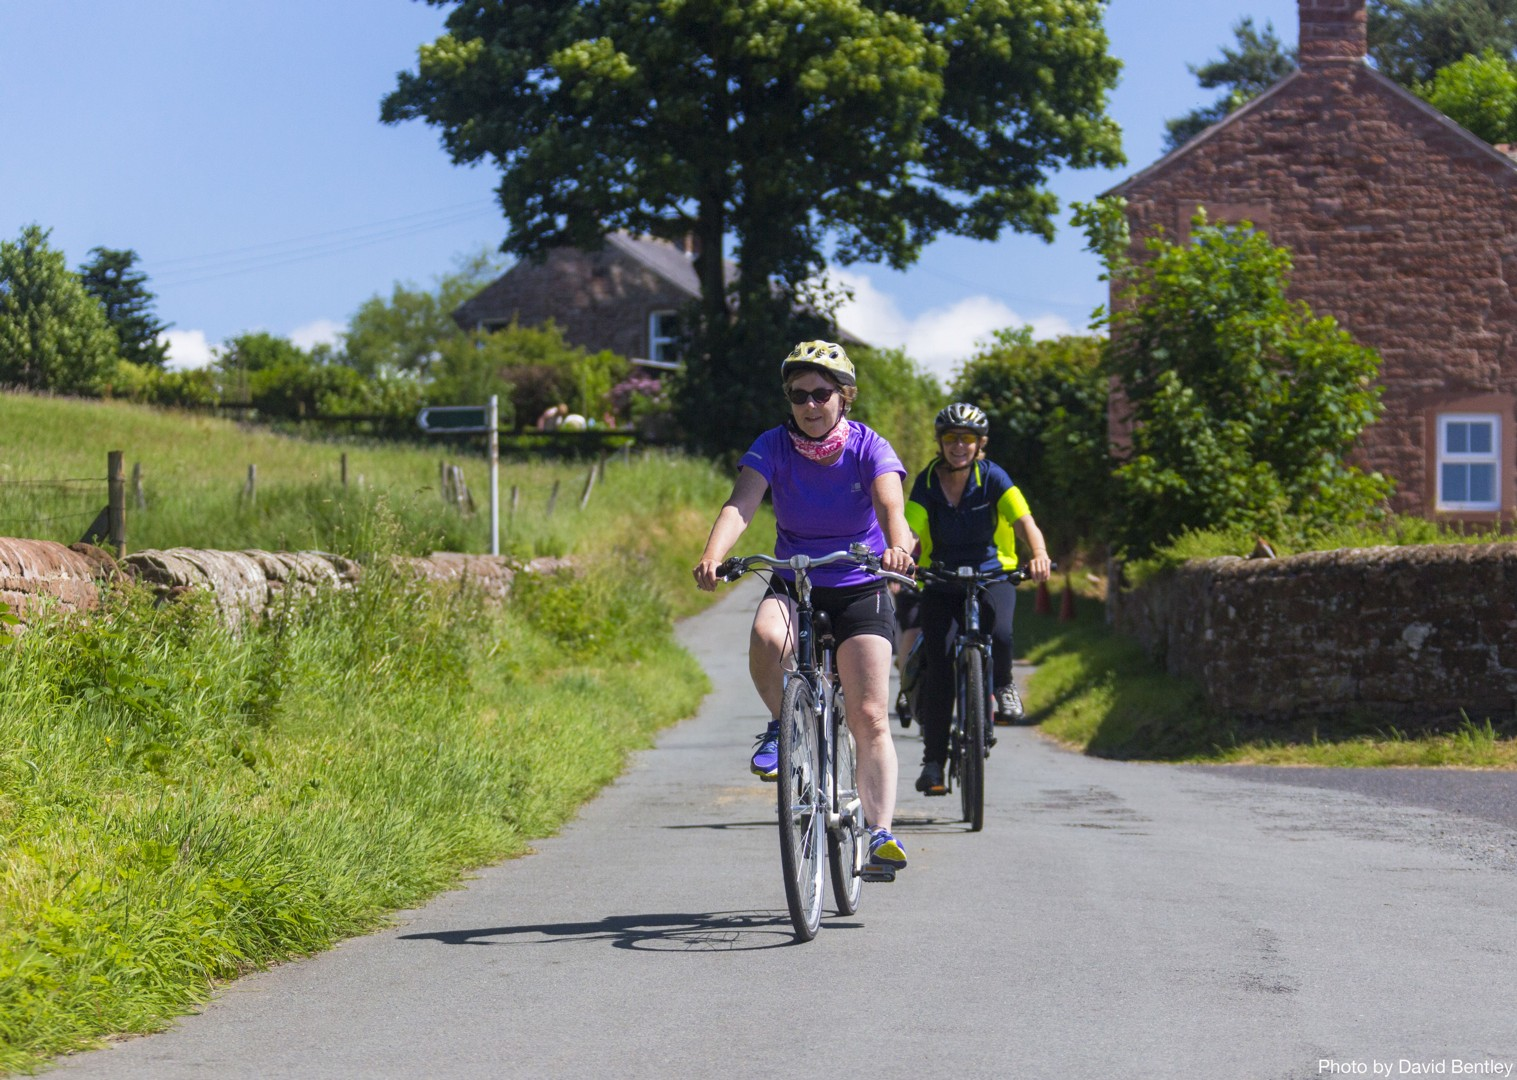 Self-Guided-Leisure-Cycling-Holiday-Hadrians-Cycleway-UK.jpg - UK - Hadrian's Cycleway - 3 Days Cycling - Self-Guided Leisure Cycling Holiday - Leisure Cycling